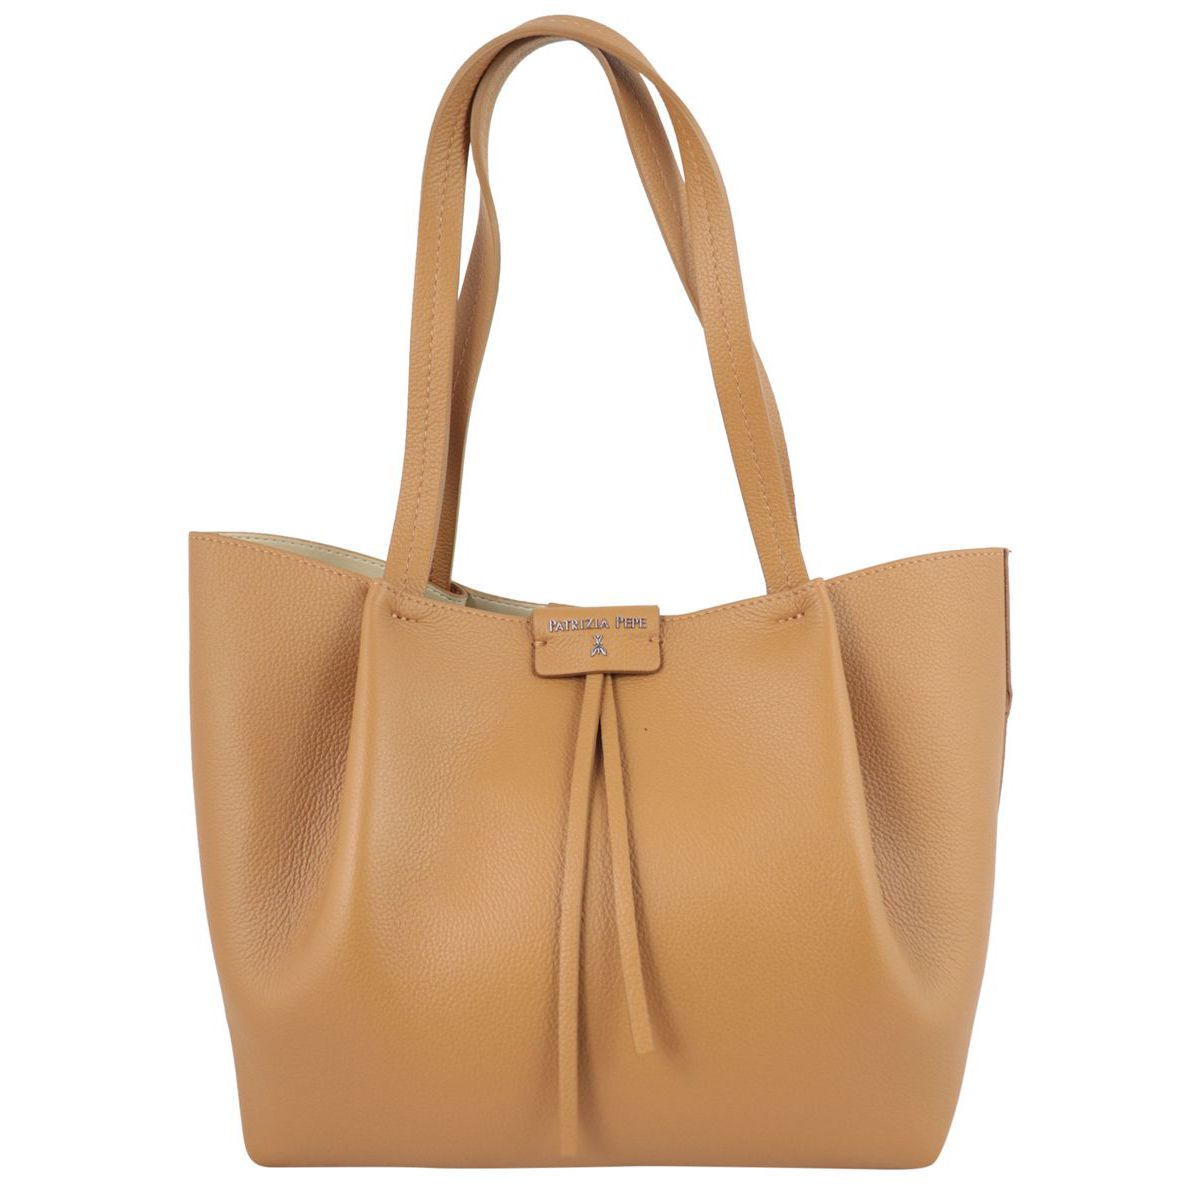 Shopper bag in cowhide leather with logo Leather Patrizia Pepe